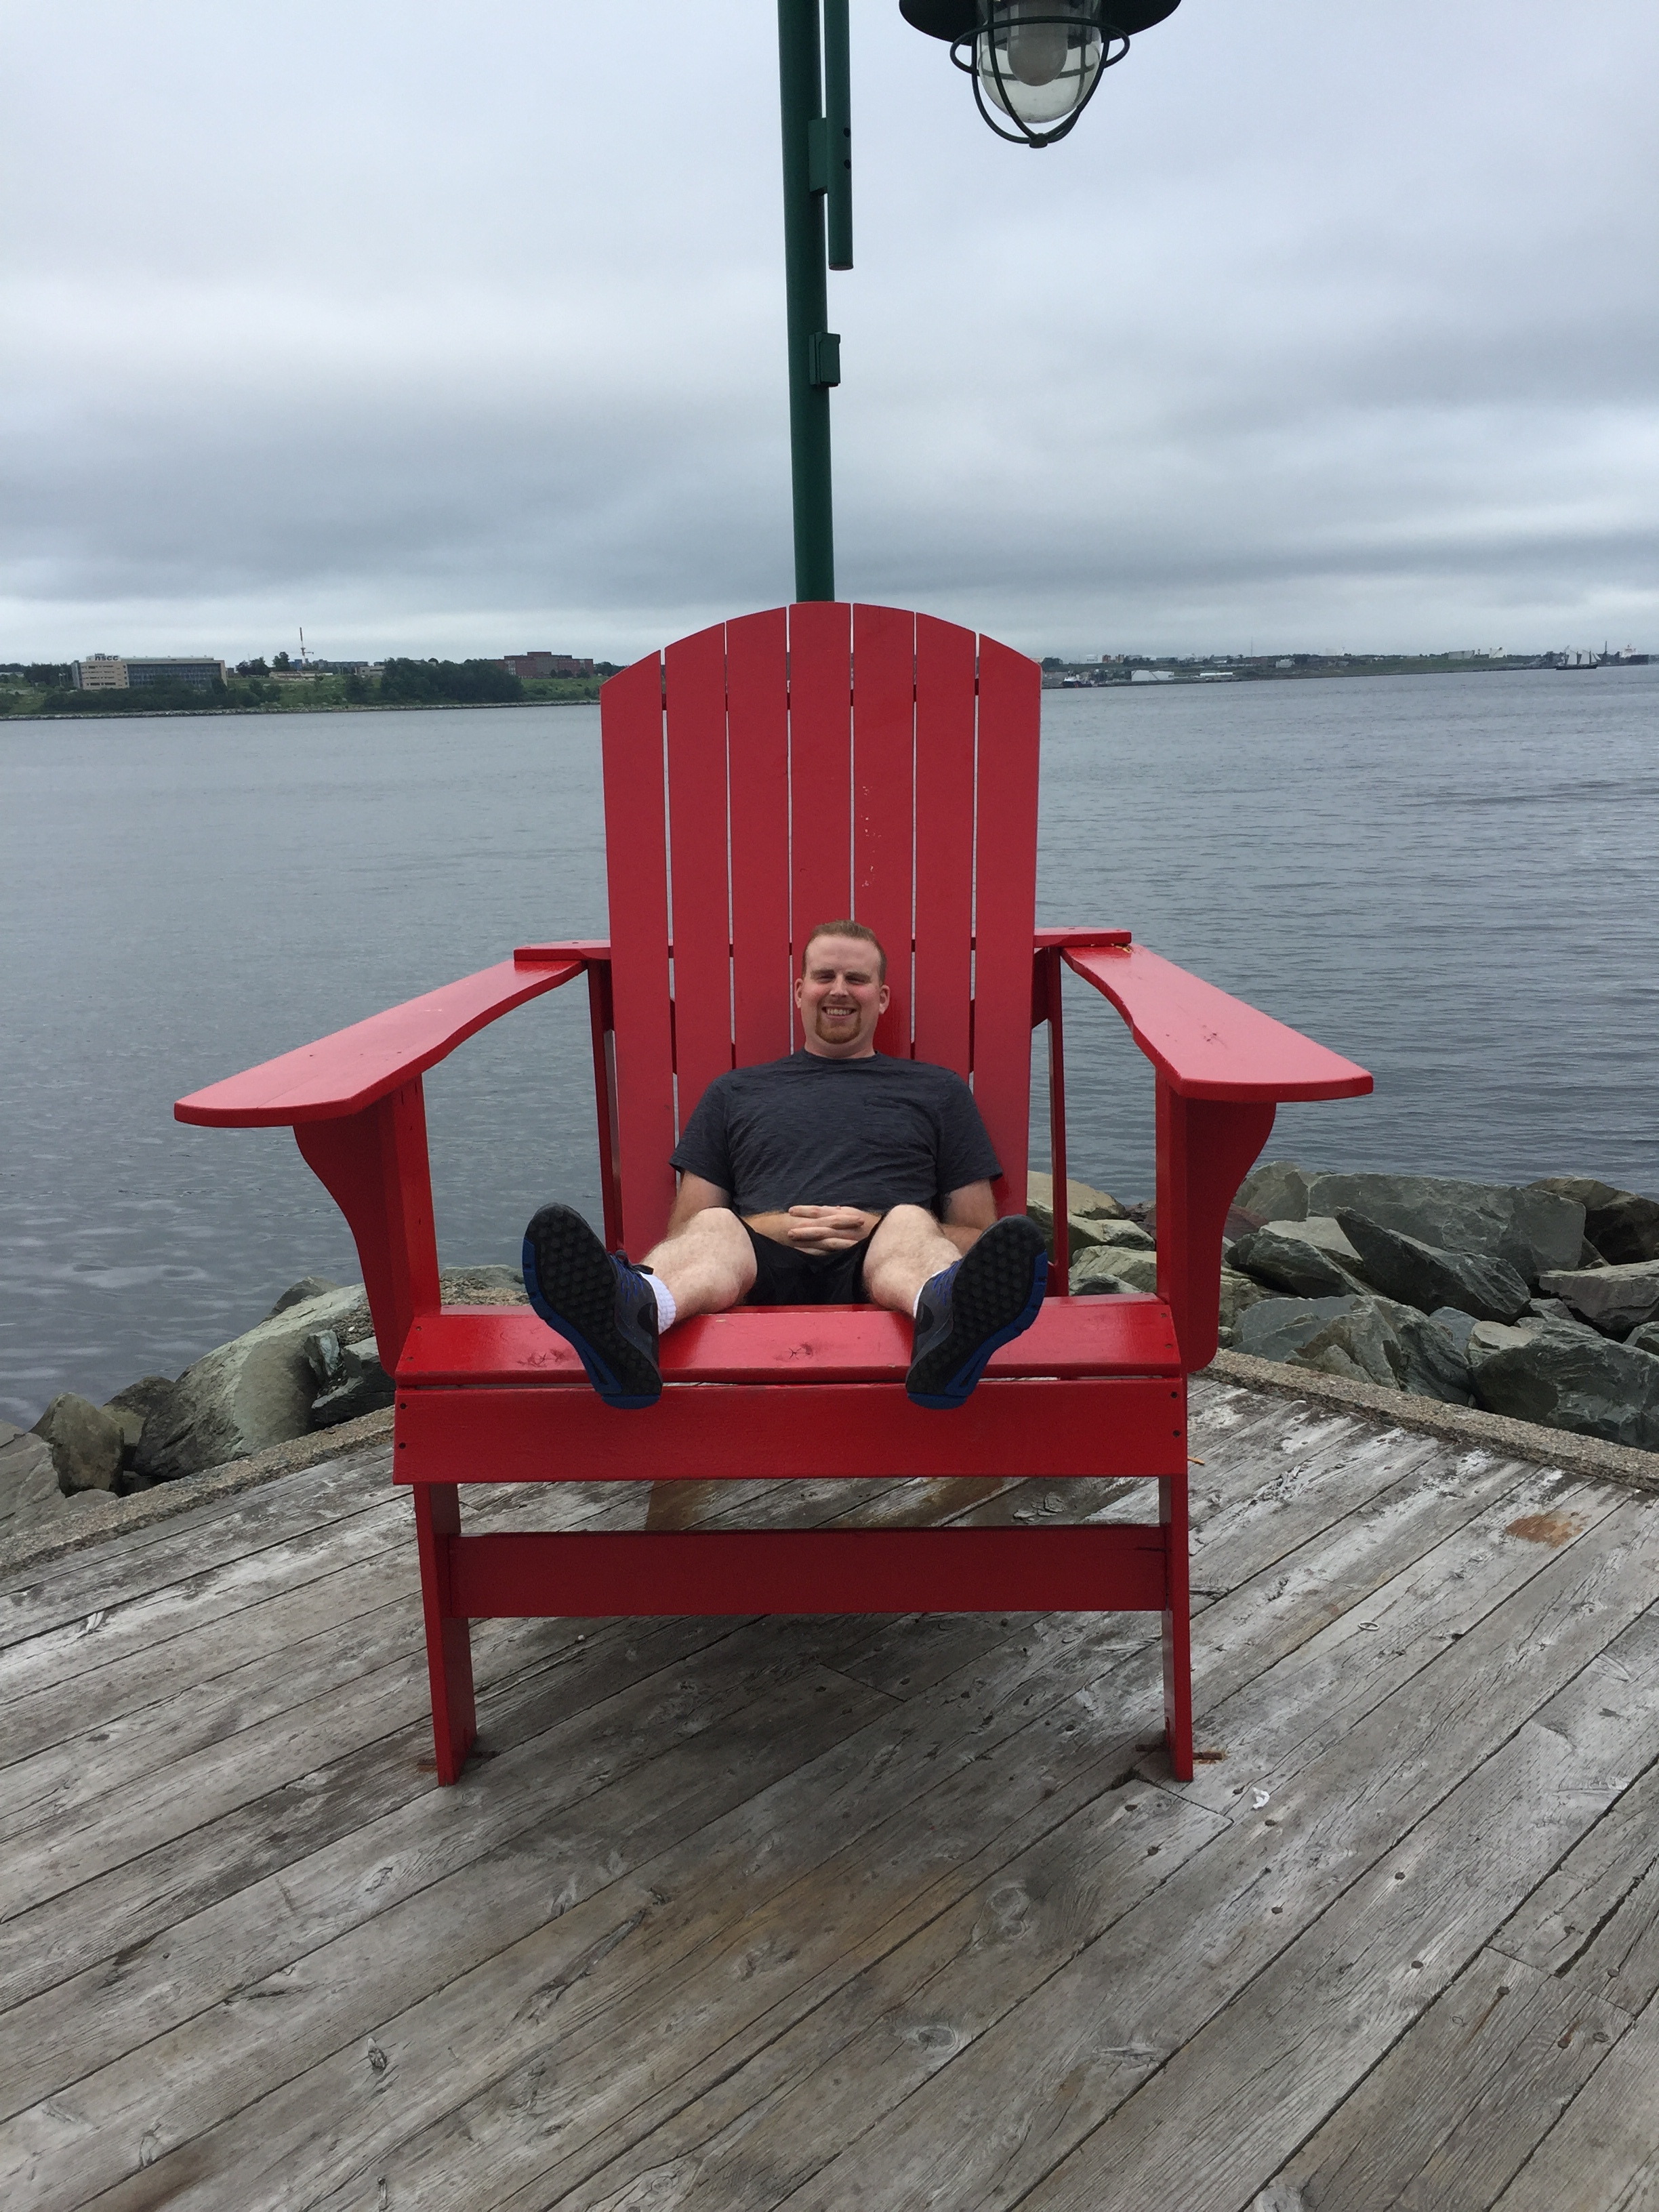 Arrived to Halifax. Found the perfect chair for me to rest in before the big week.